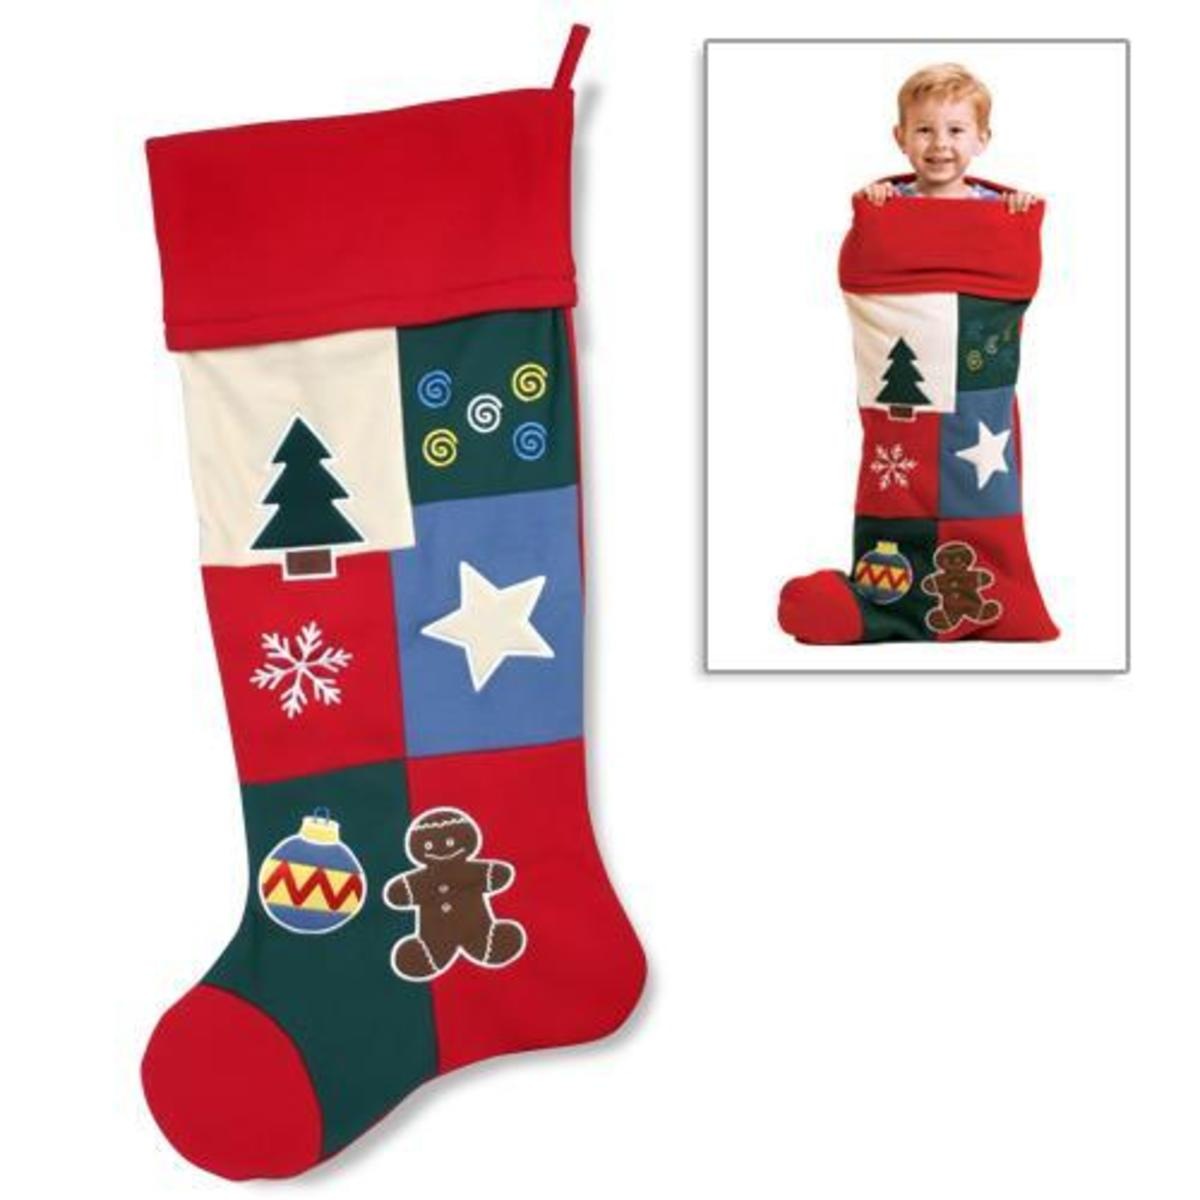 Giant Christmas Stockings | HubPages